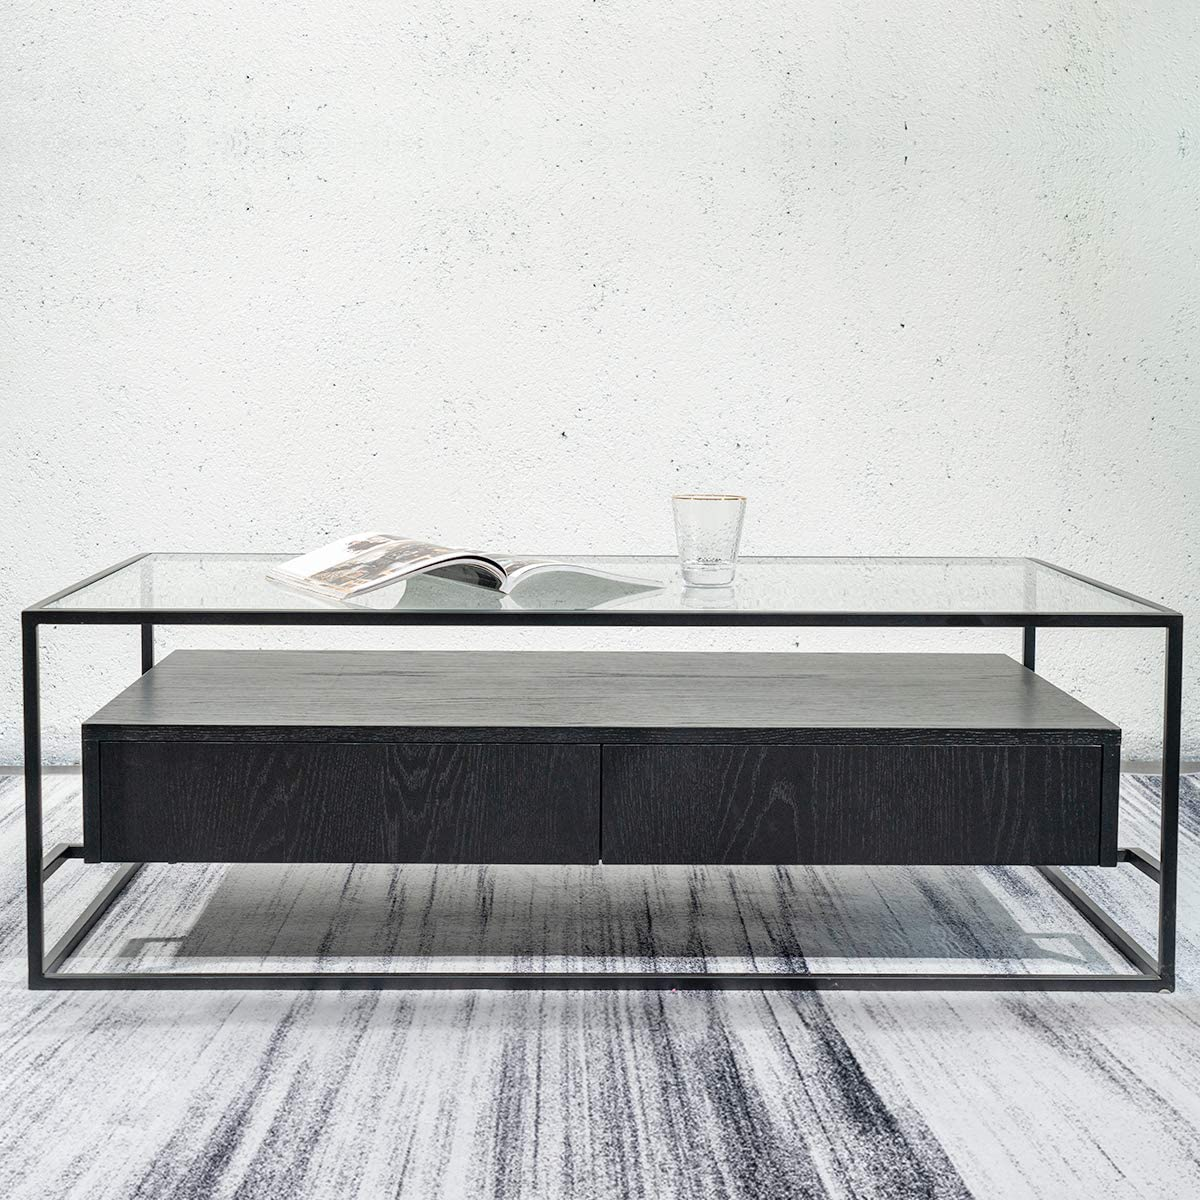 Rustic Rectangle Coffee Table with Storage Drawers, Retro Style Furniture with Metal Frame for Living Room,Easy Assembly